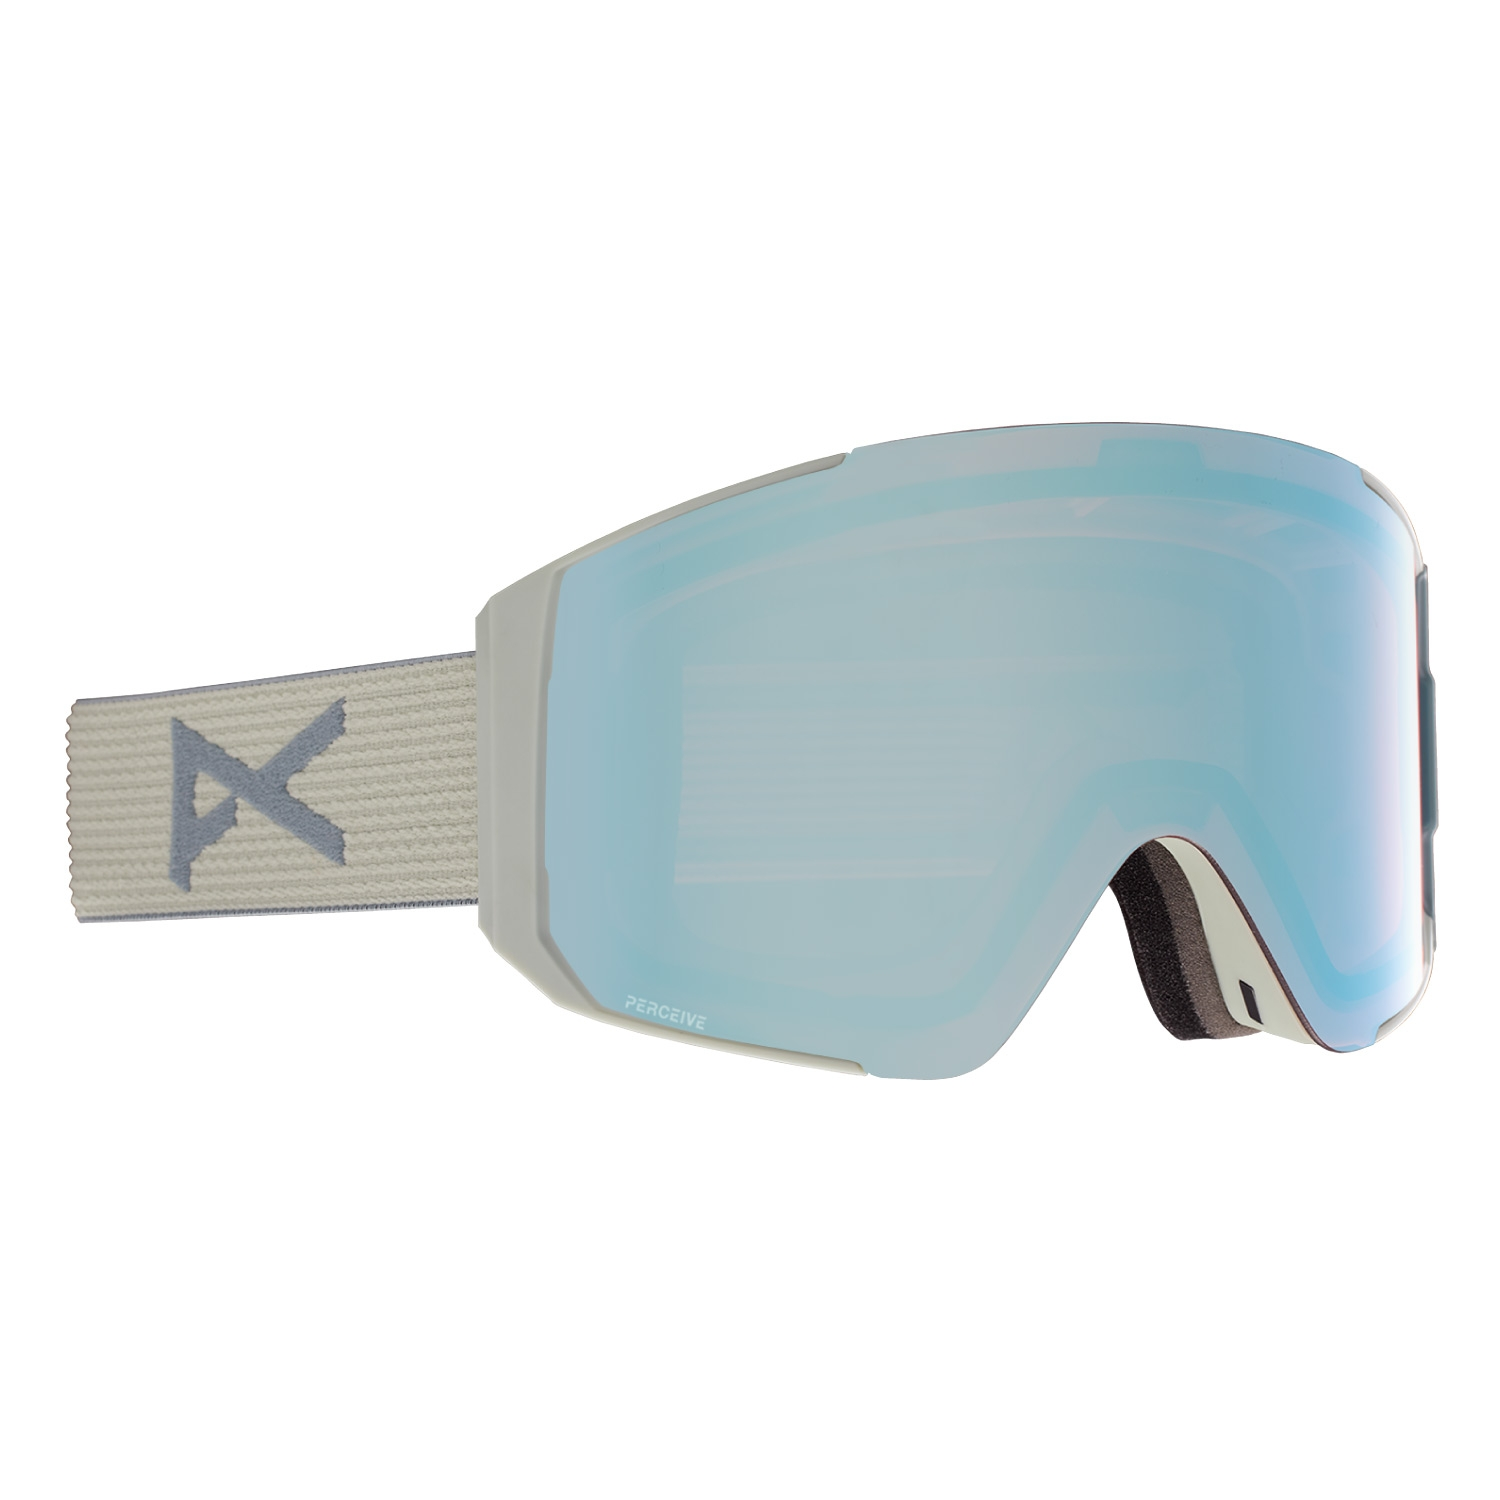 Anon Sync Goggles Gray/Perceive Variable Blue Lens 2021